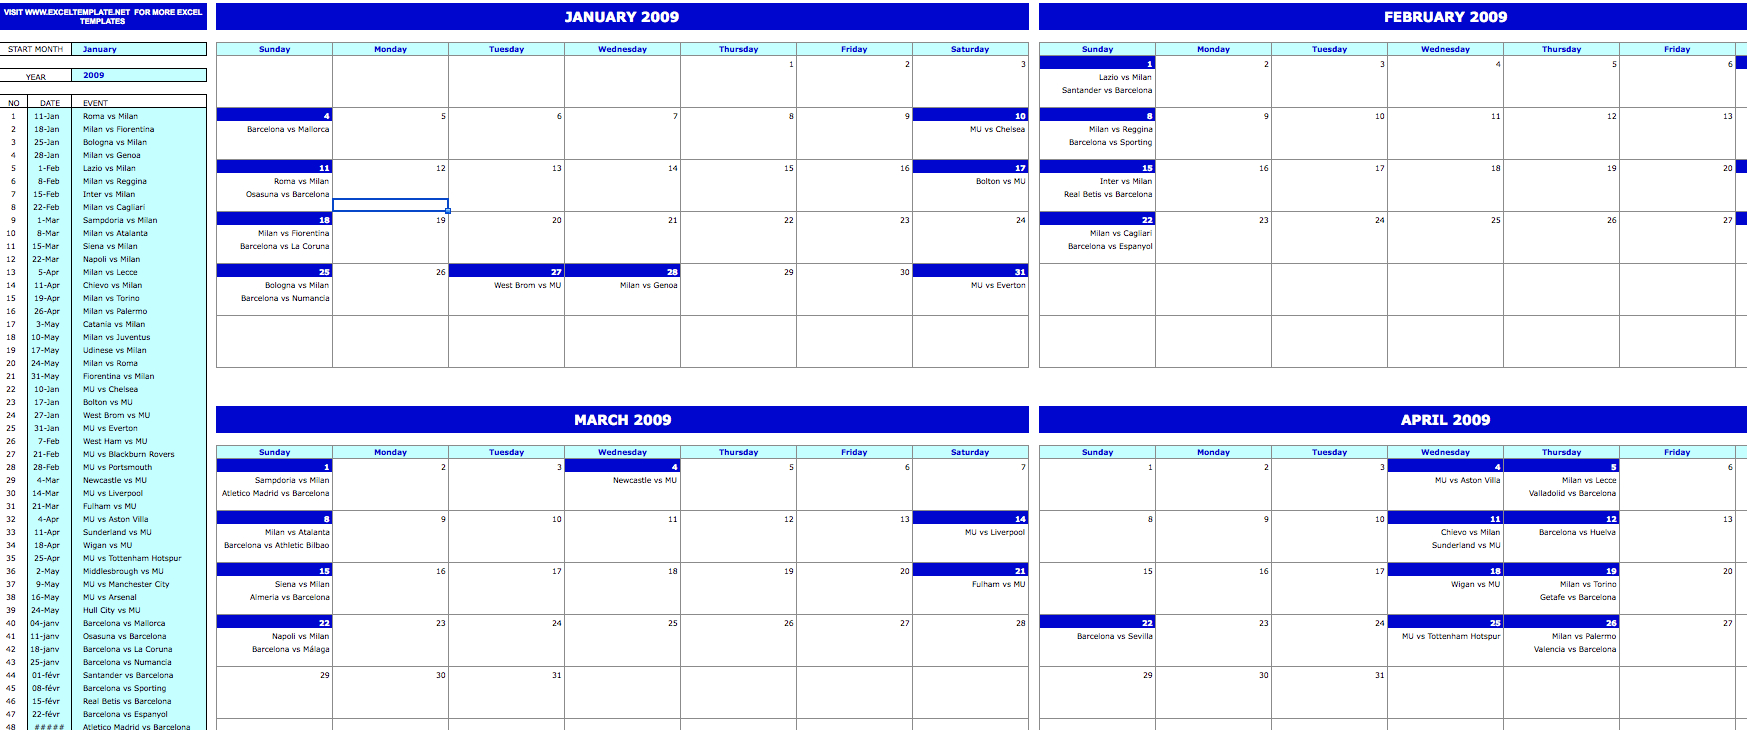 4 Month Calendar Template Five Things You Need To Know 4 Week Calendar Template With Enterable Date